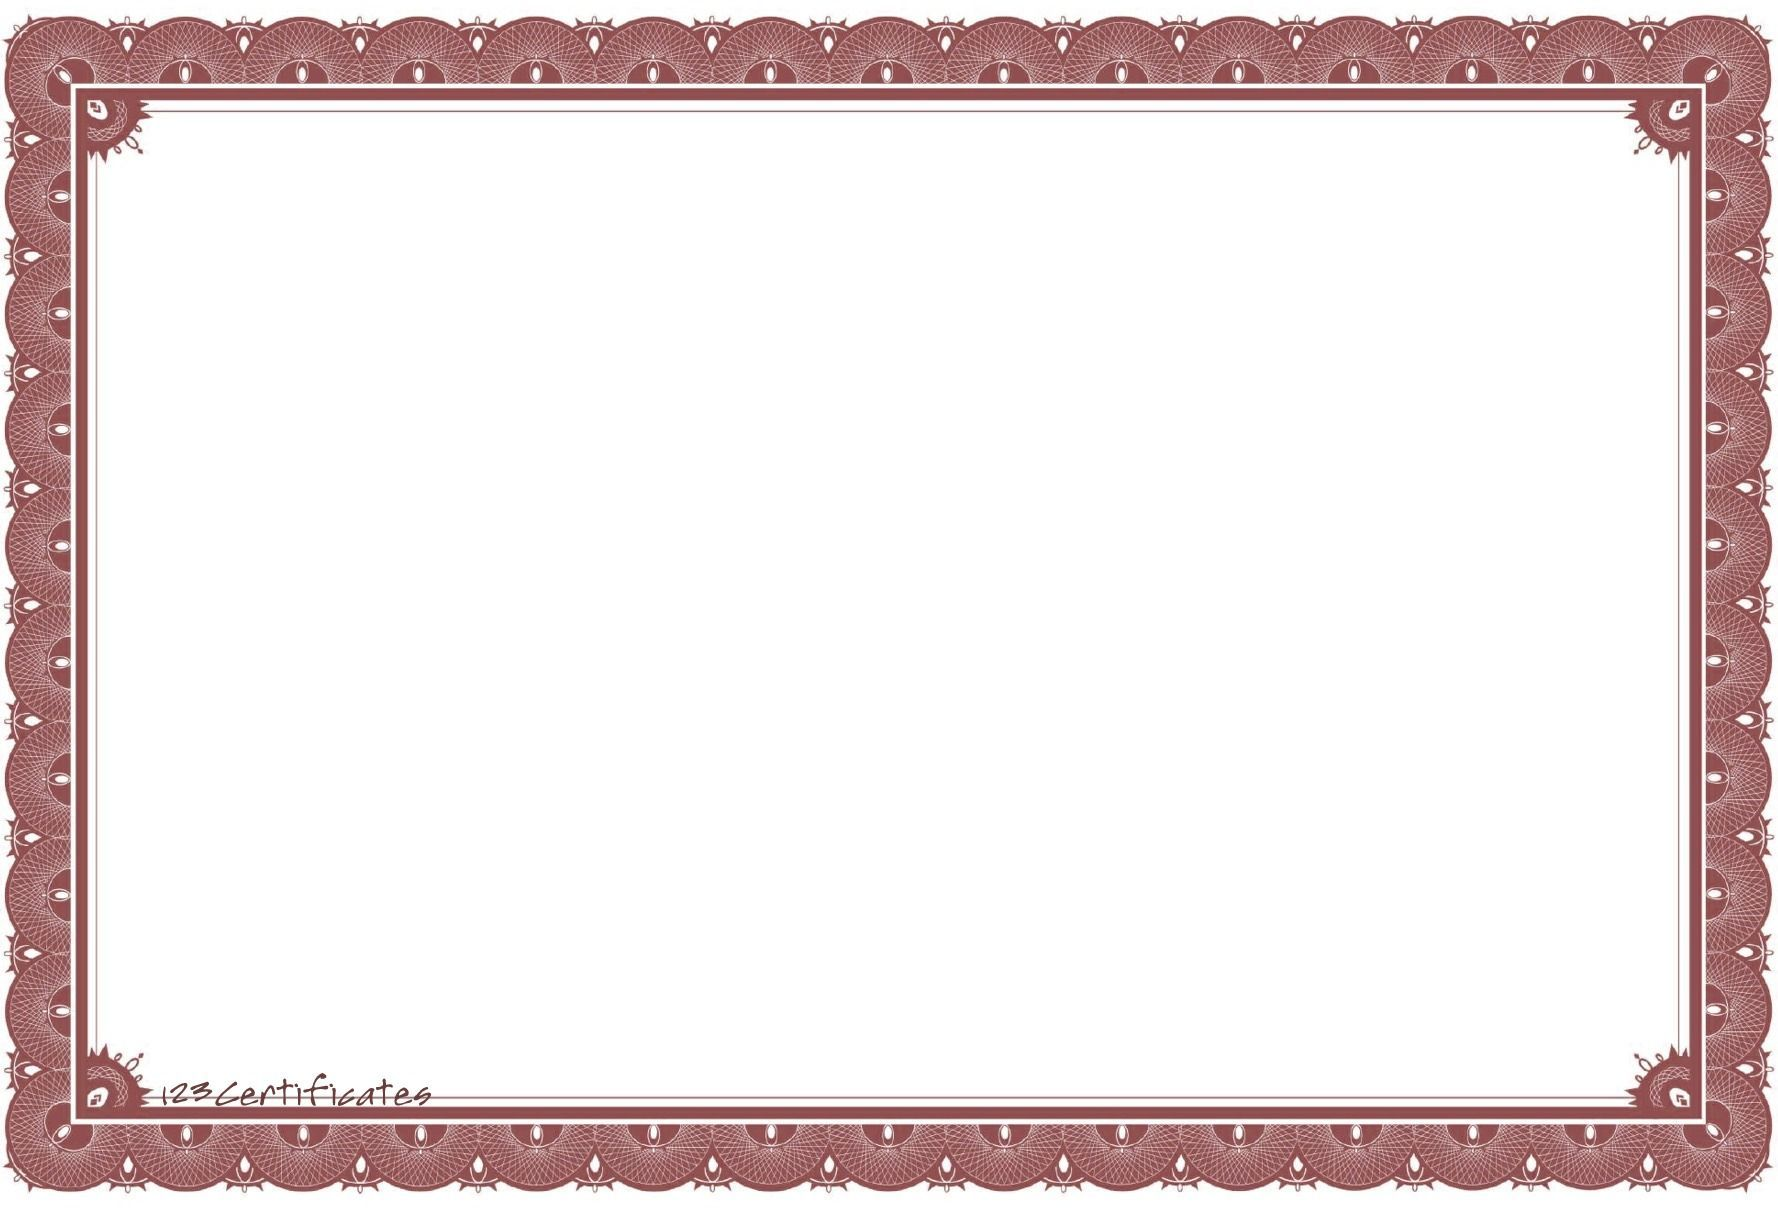 Free certificate borders to download, certificate templates.